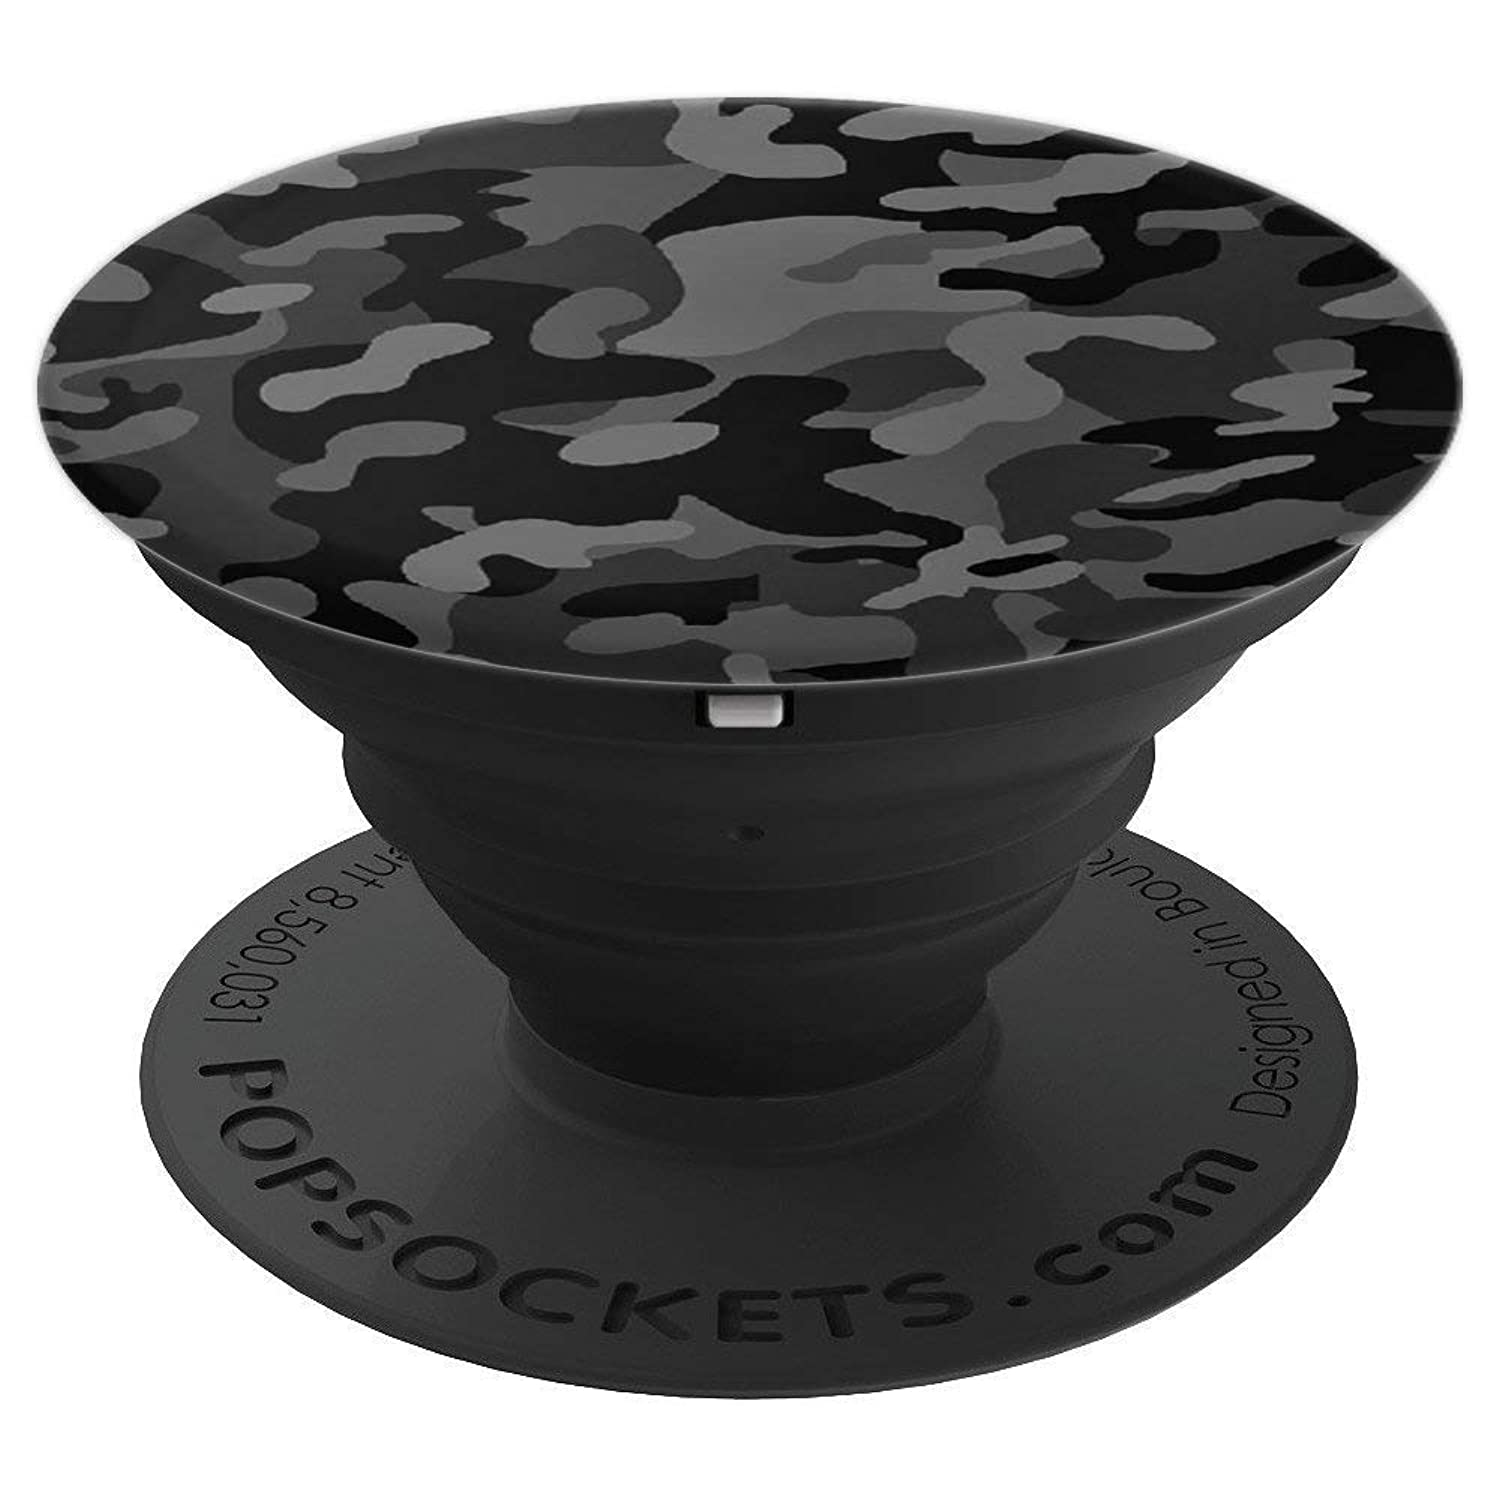 Grey Camo Grip Gray Camouflage Phone Holder Gift - PopSockets Grip and Stand for Phones and Tablets